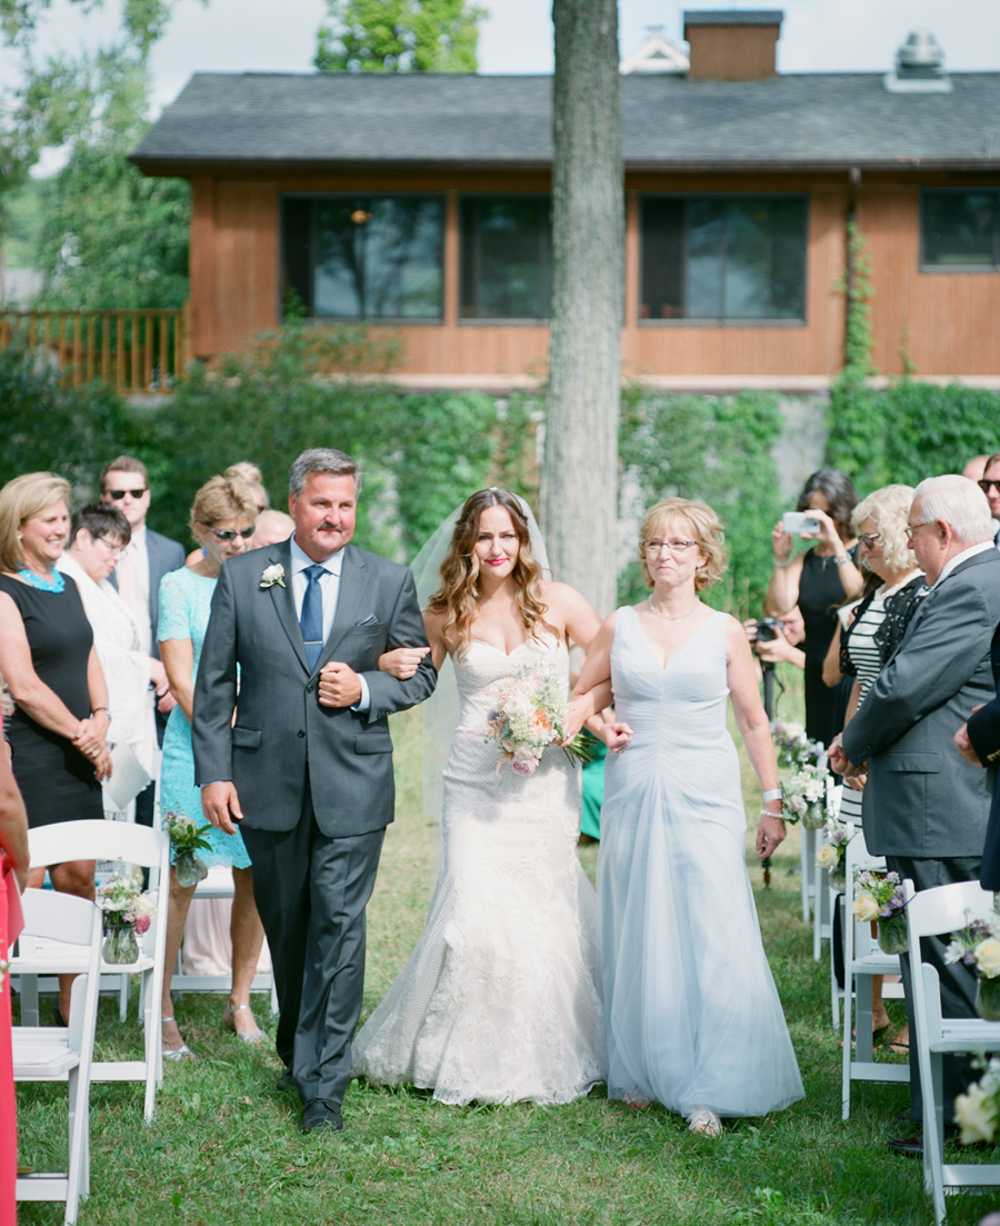 Horseshoe_Bay_Farms_Egg_Harbor_Wedding033.jpg